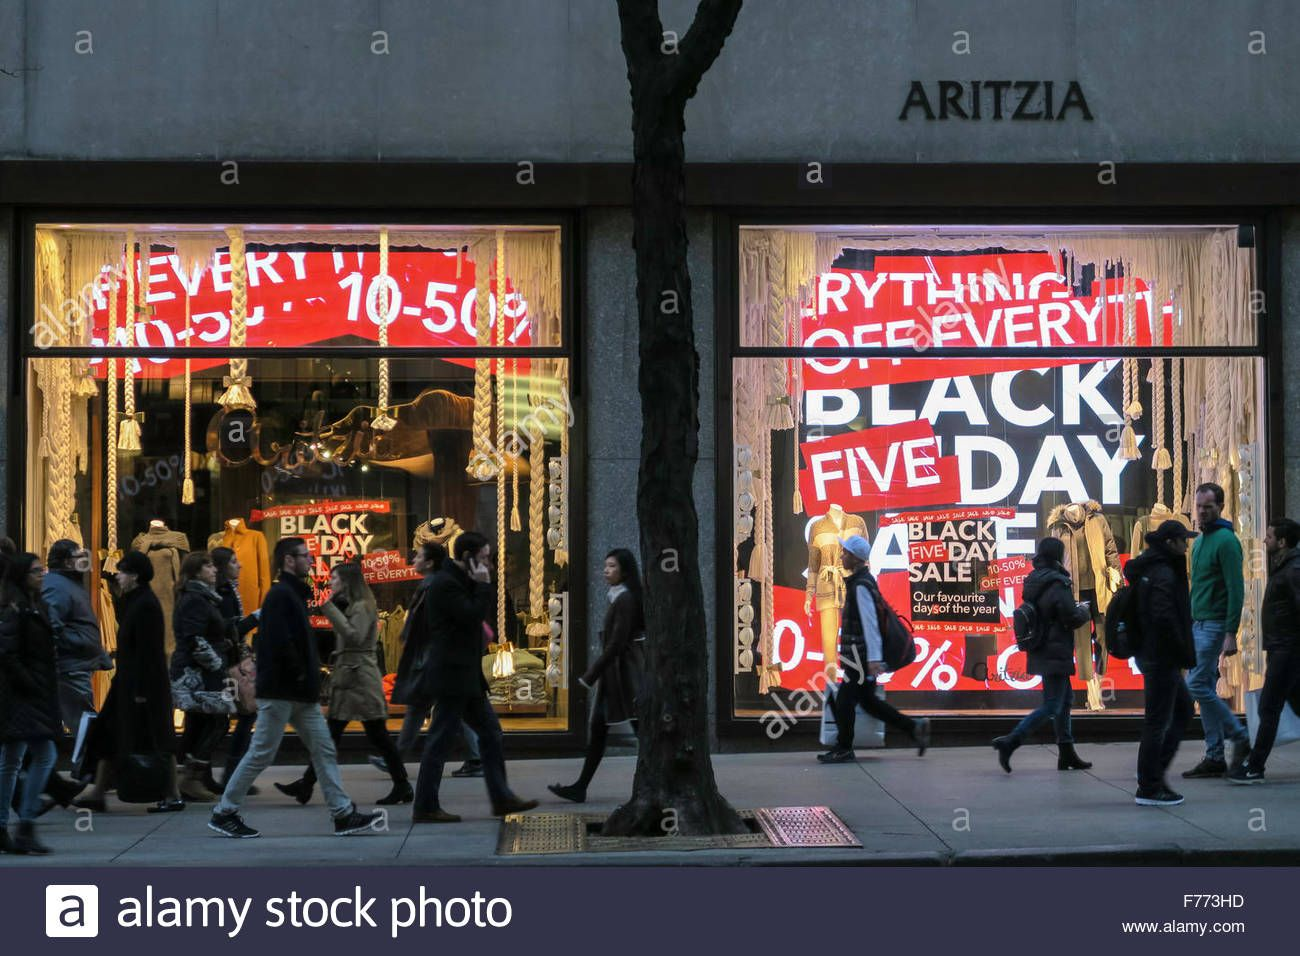 Aritzia Store Windows Advertising Black Friday Sales Nycstock